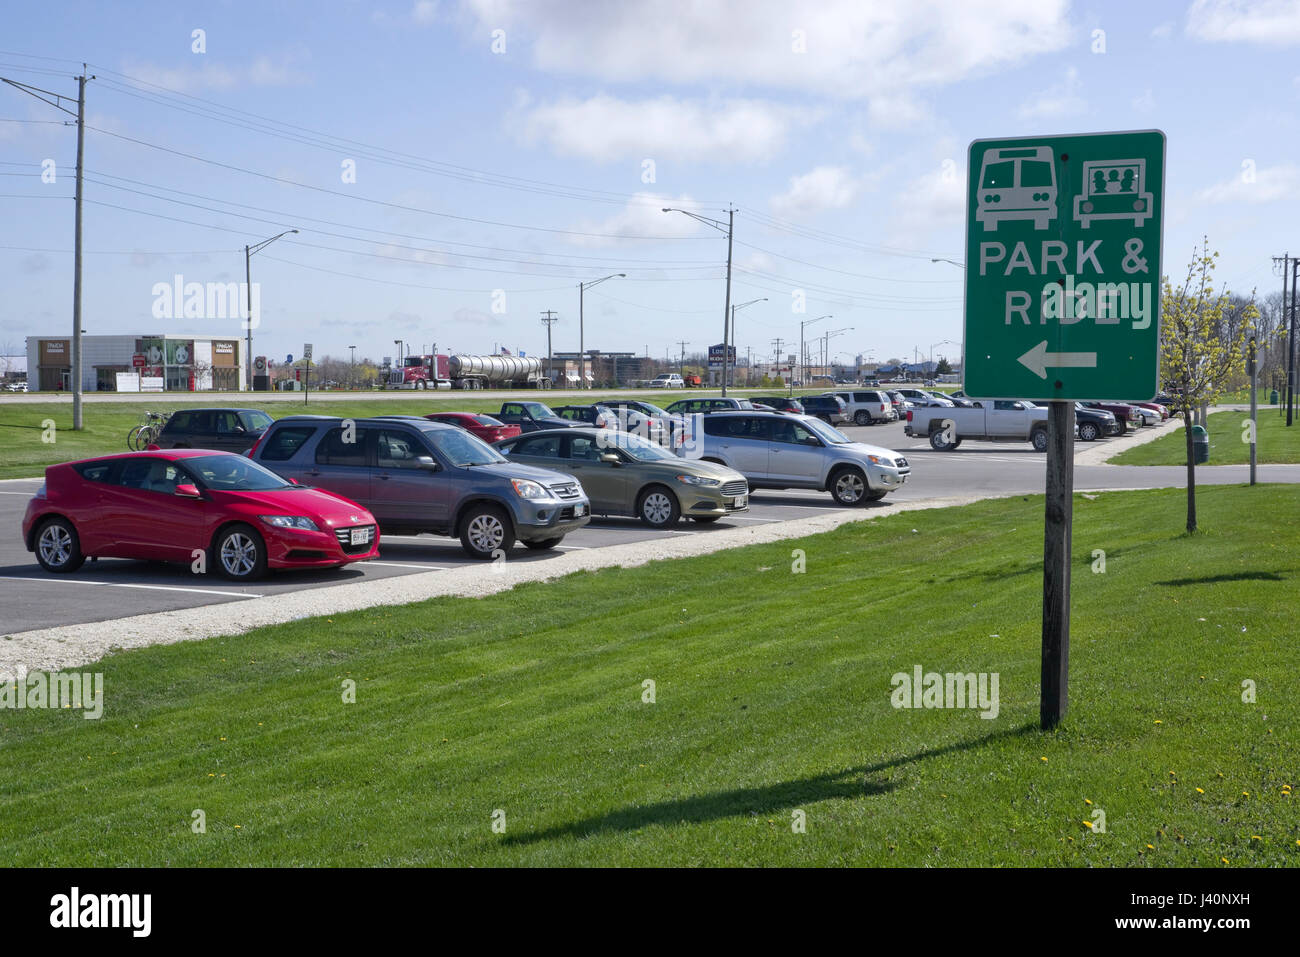 Park and Ride lot, Manitowoc Wisconsin, part of Wisconsin Department of Transportation rideshare program - Stock Image